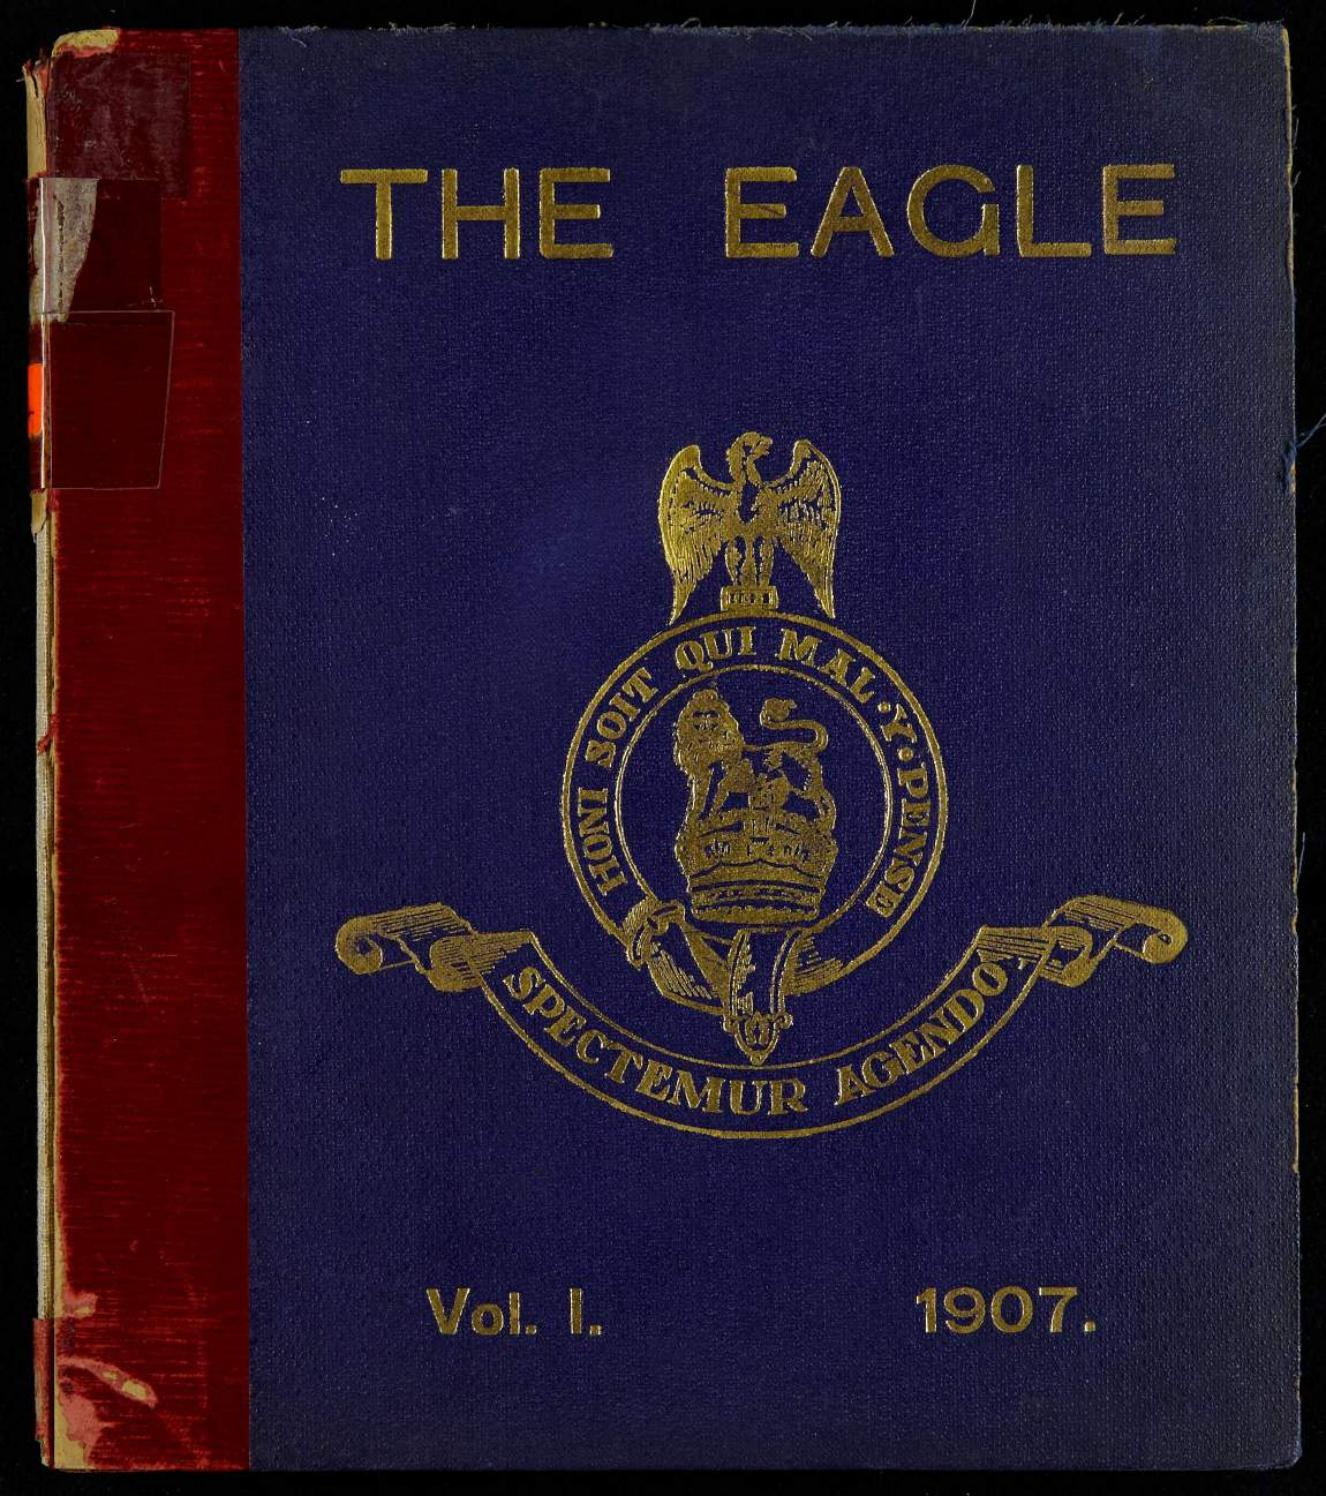 The eagle royal dragoons bound books the eagle 1907